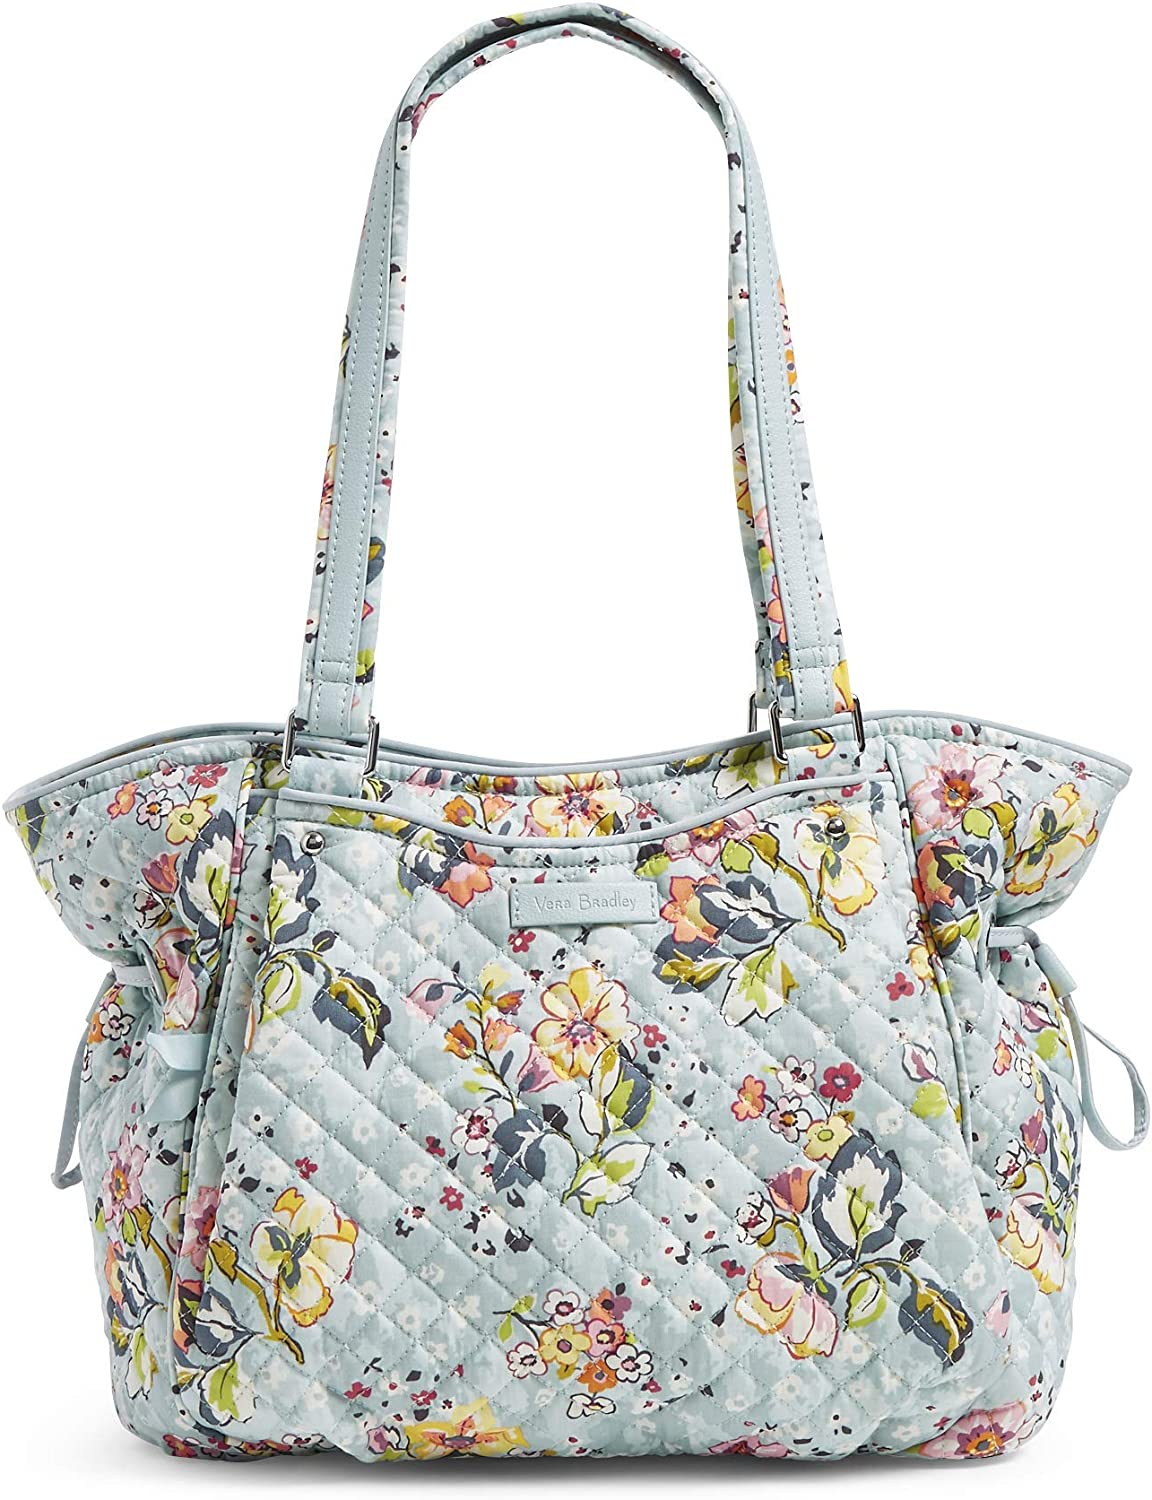 Vera Bradley Women's Signature Cotton Glenna Satchel Purse